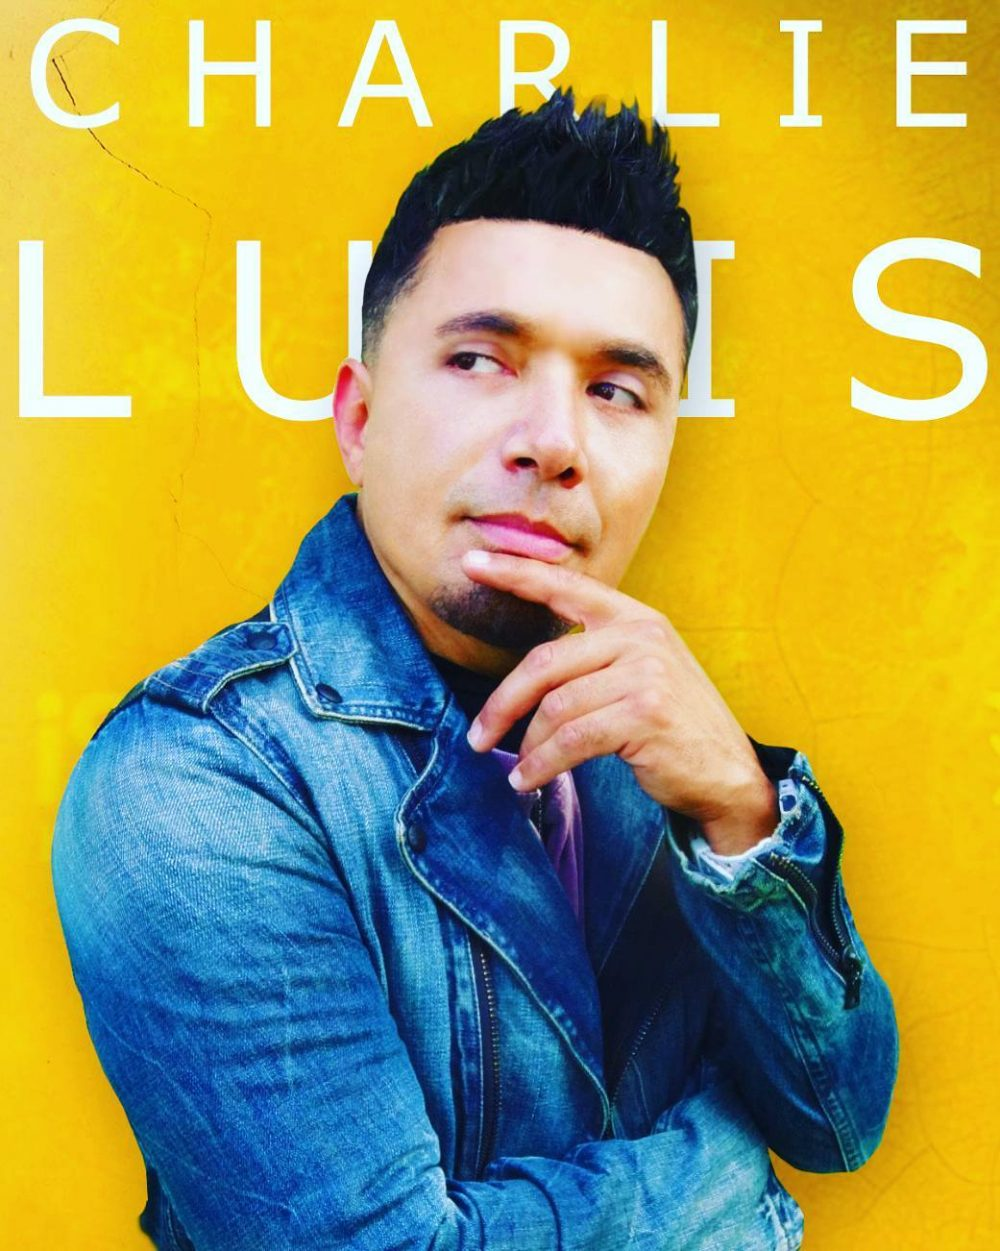 Feel Excellent Lyricism and Positive Vibes in Charlie Luis New Single